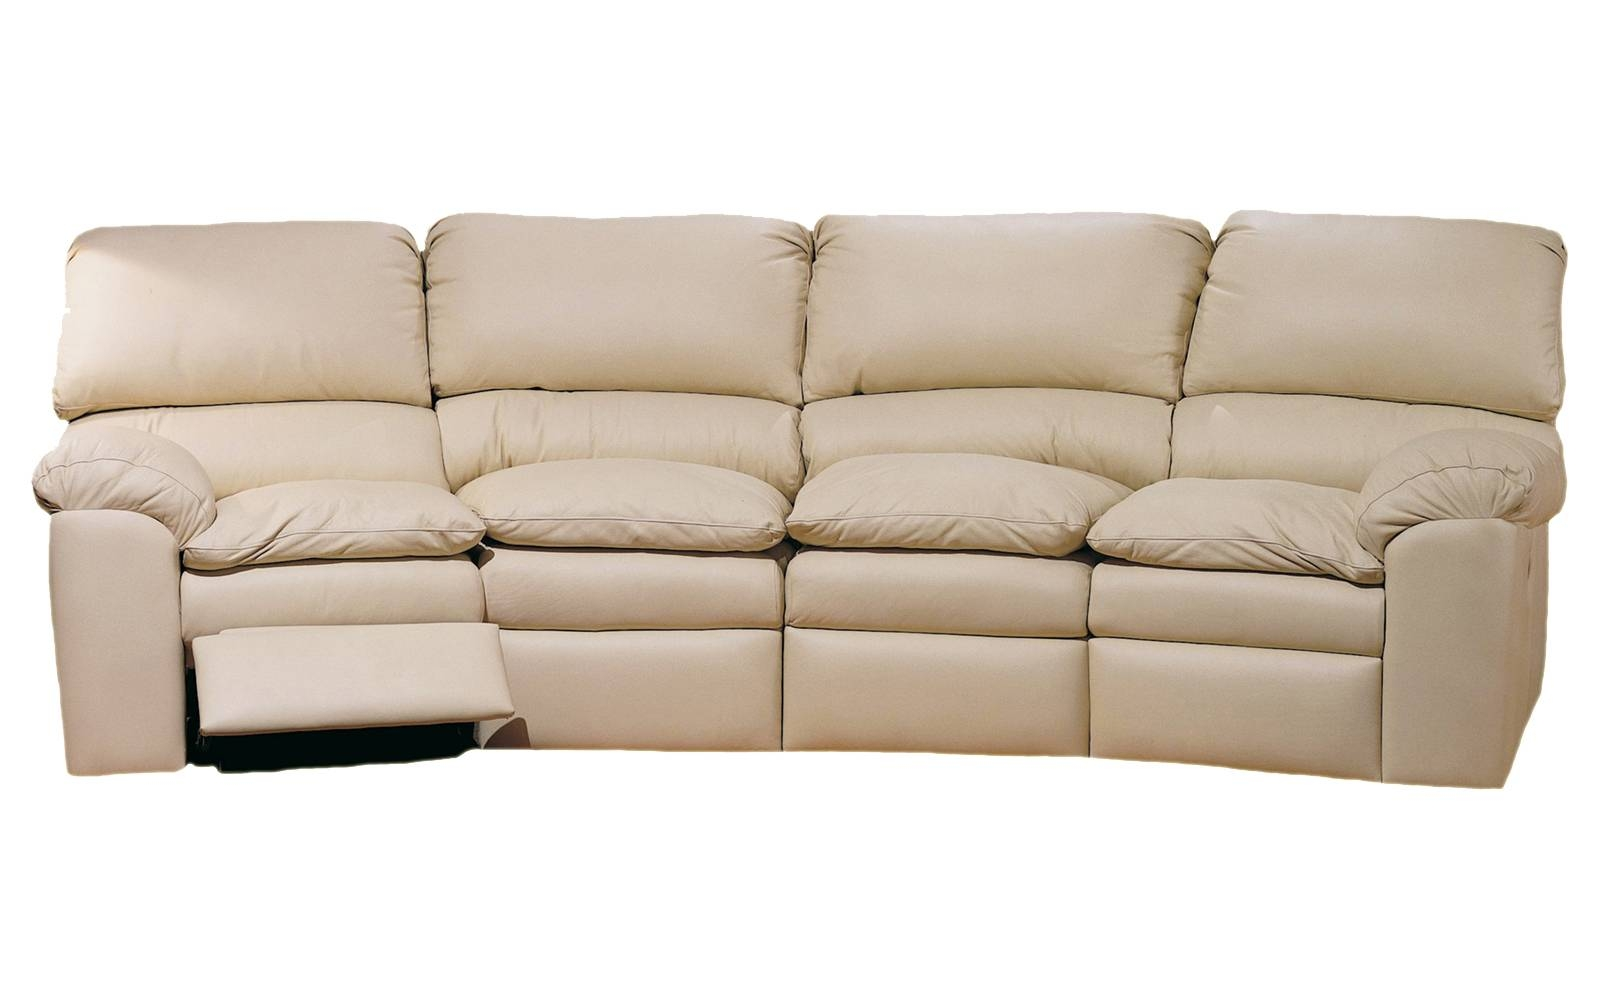 Catera 4 Seat Conversation Sofa – Omnia Leather in Four Seat Sofas (Image 9 of 30)